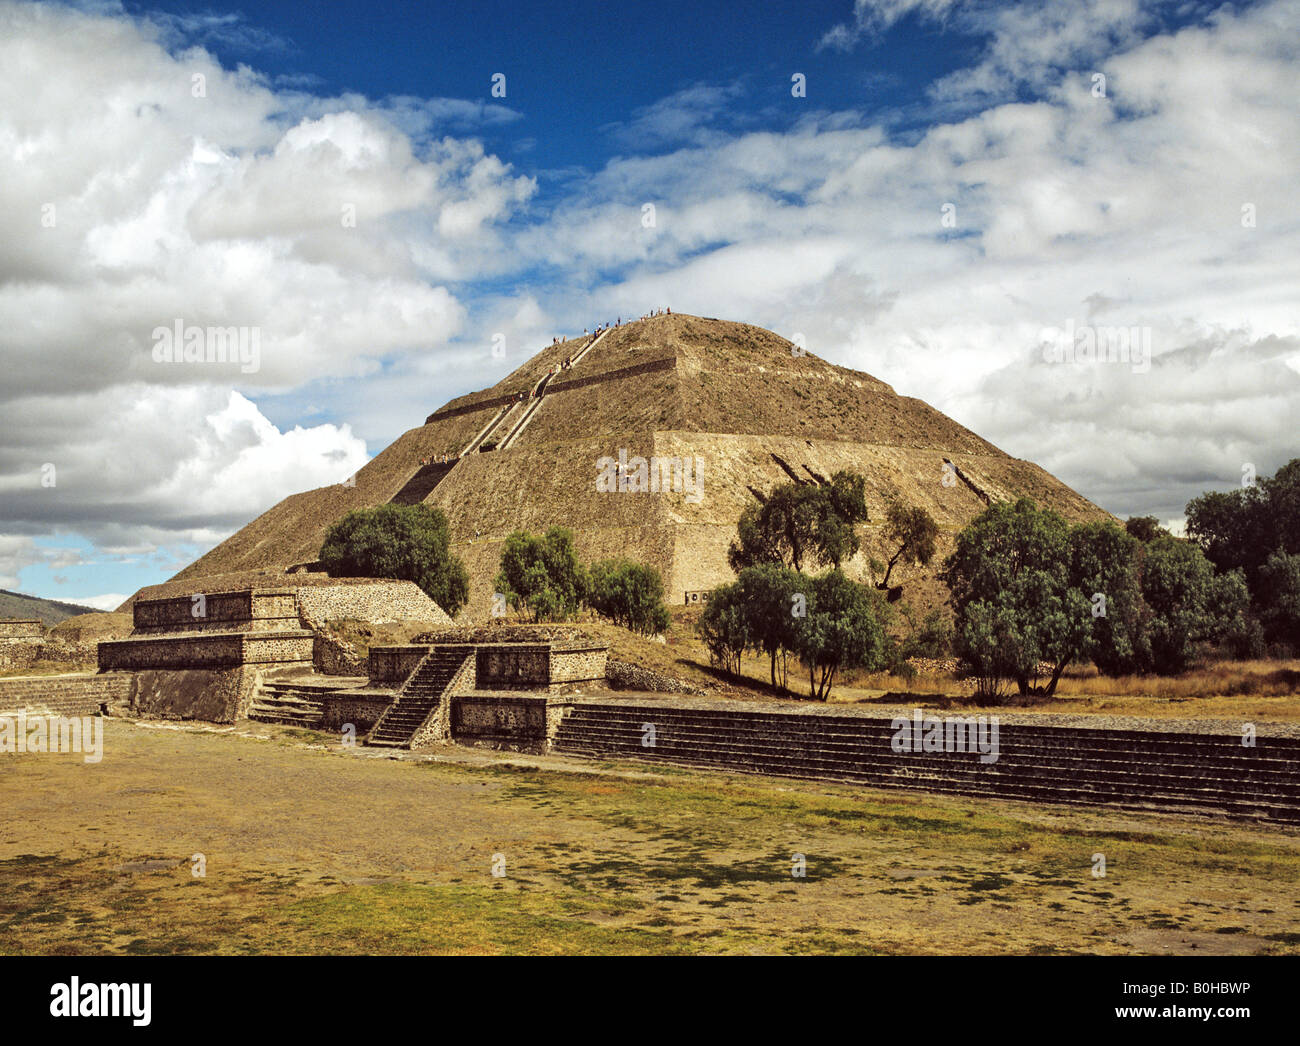 Pyramid of the Sun in Teotihuacan, Aztec civilization near ...